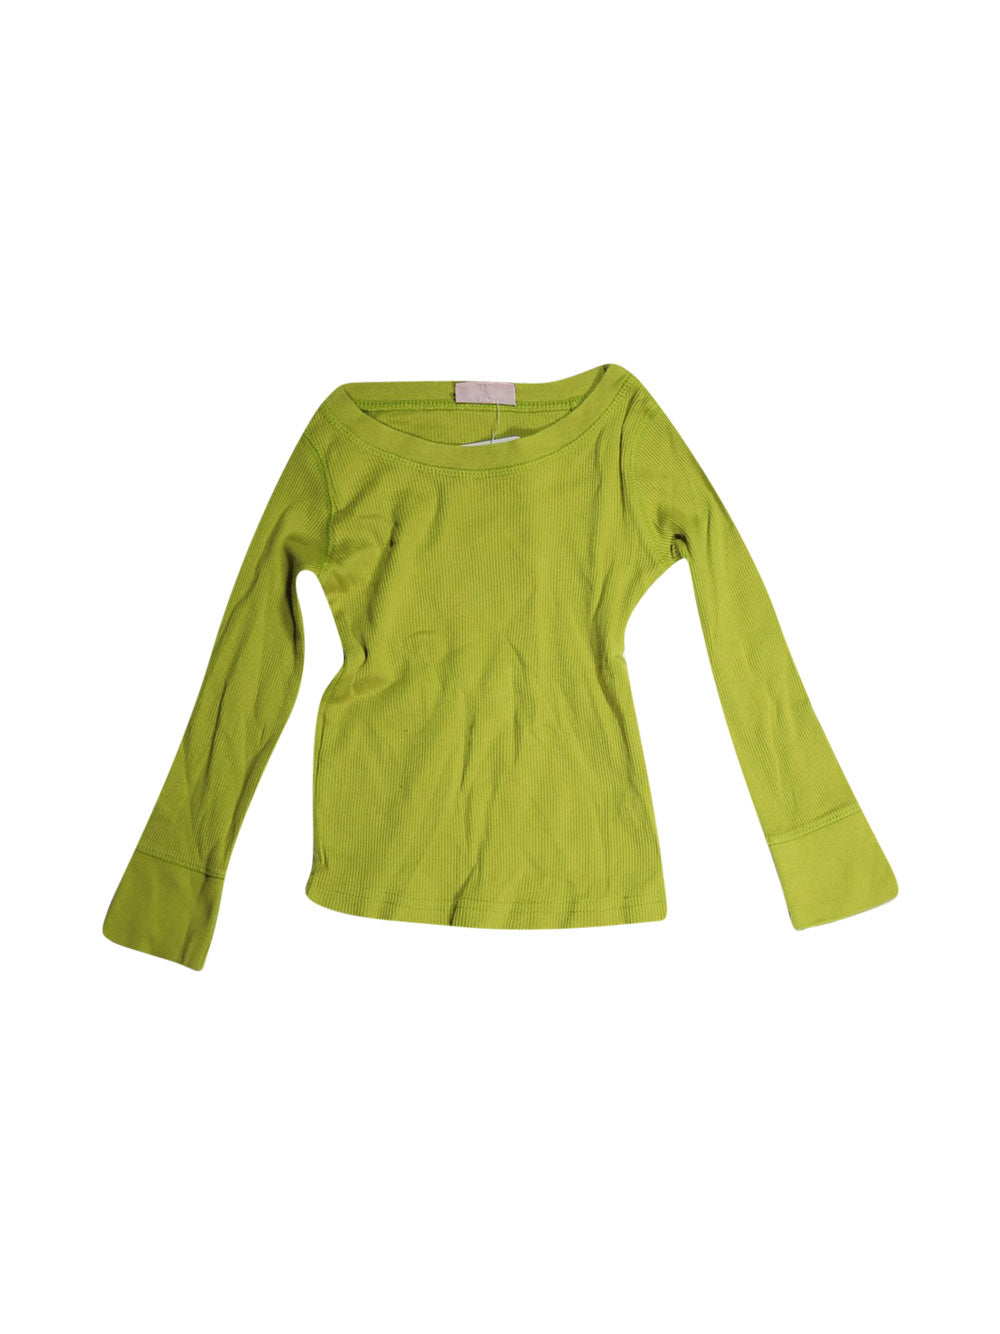 Front photo of Preloved Noa Noa Green Girl's long sleeved shirt - size 2-3 yrs